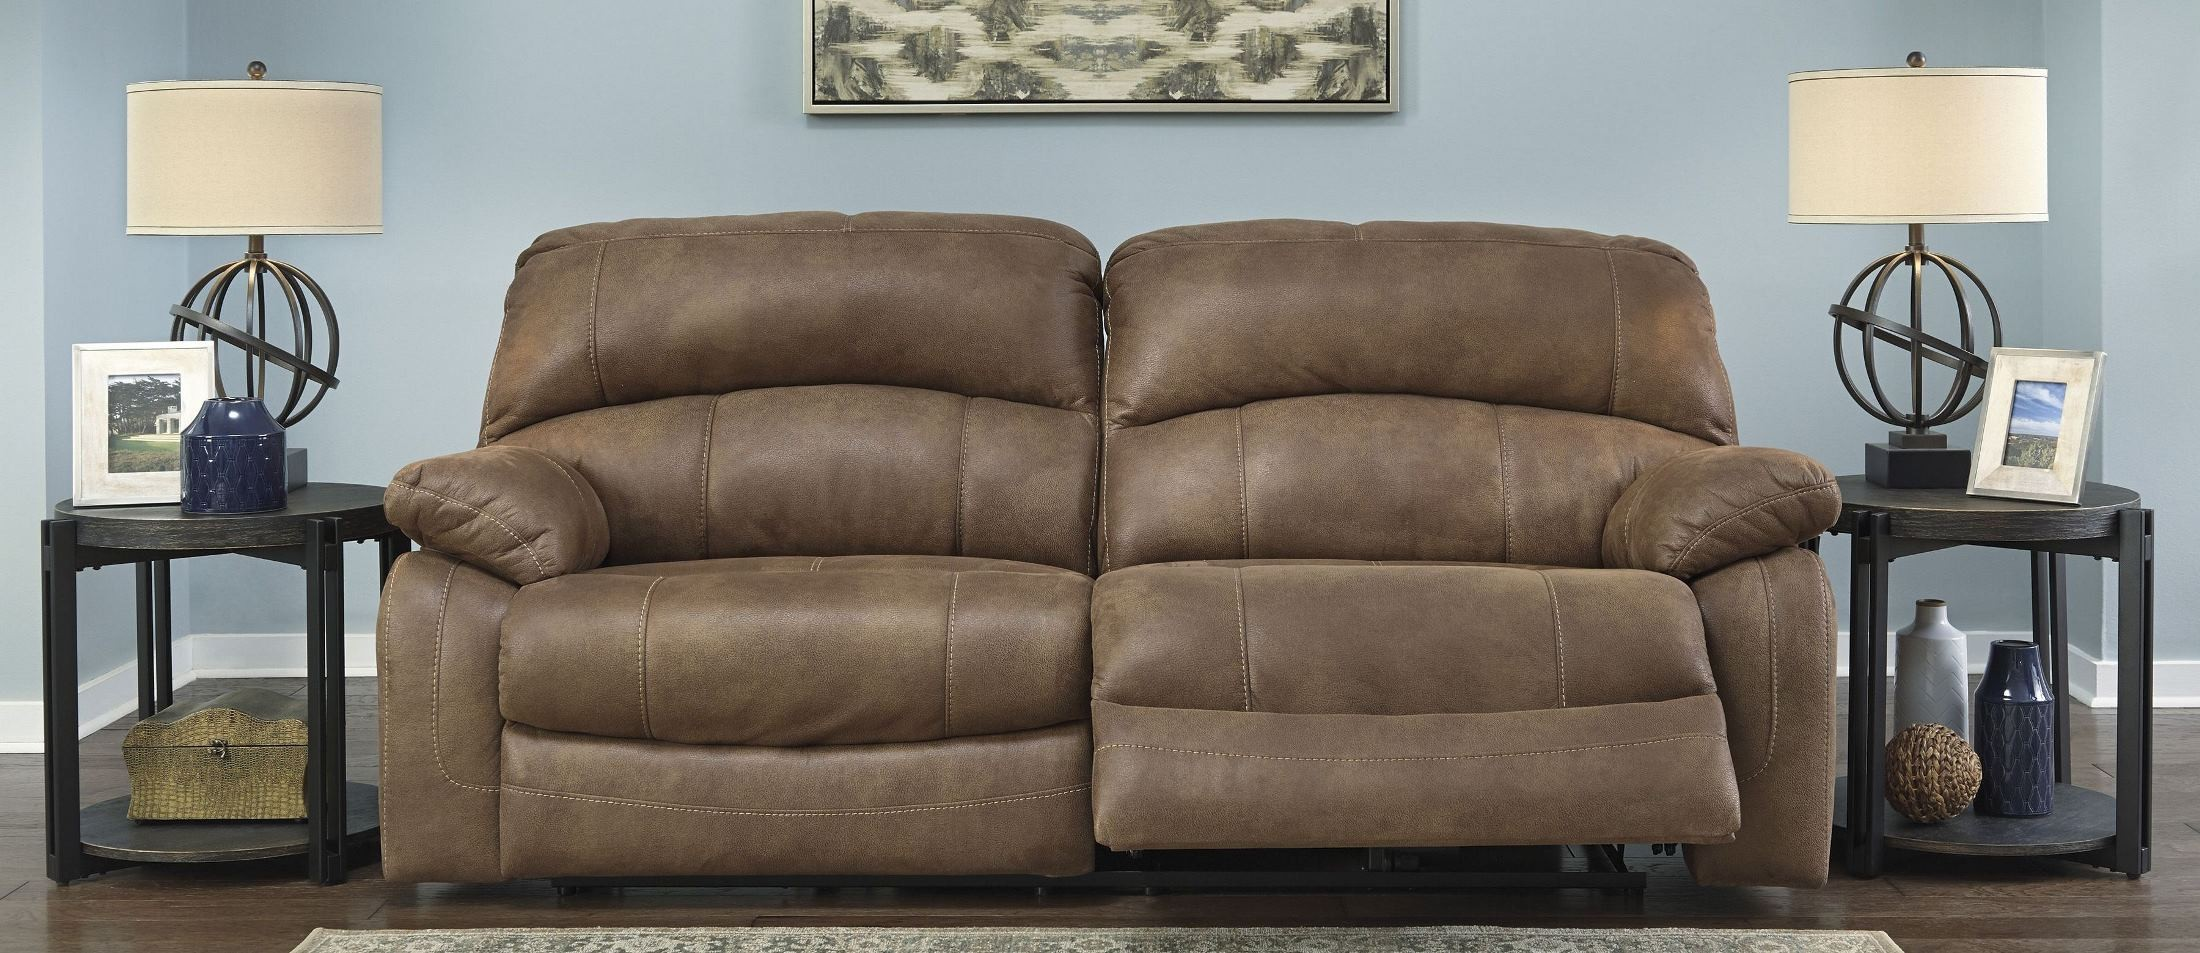 Zavier saddle 2 seat reclining sofa 4290281 ashley for Furniture xchange new jersey